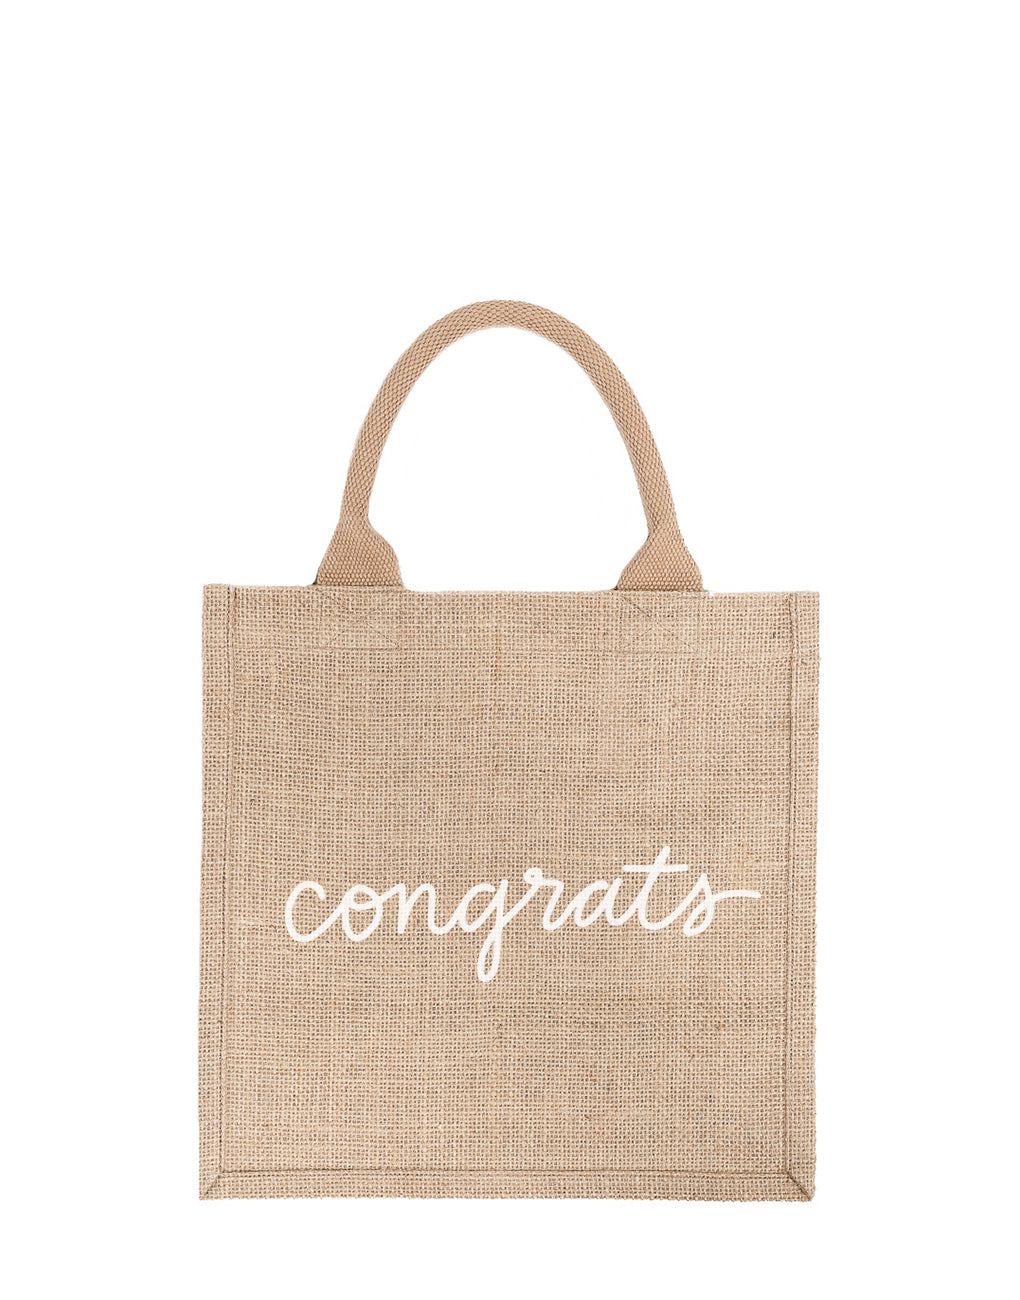 Large Congrats Reusable Gift Tote In White Font | The Little Market